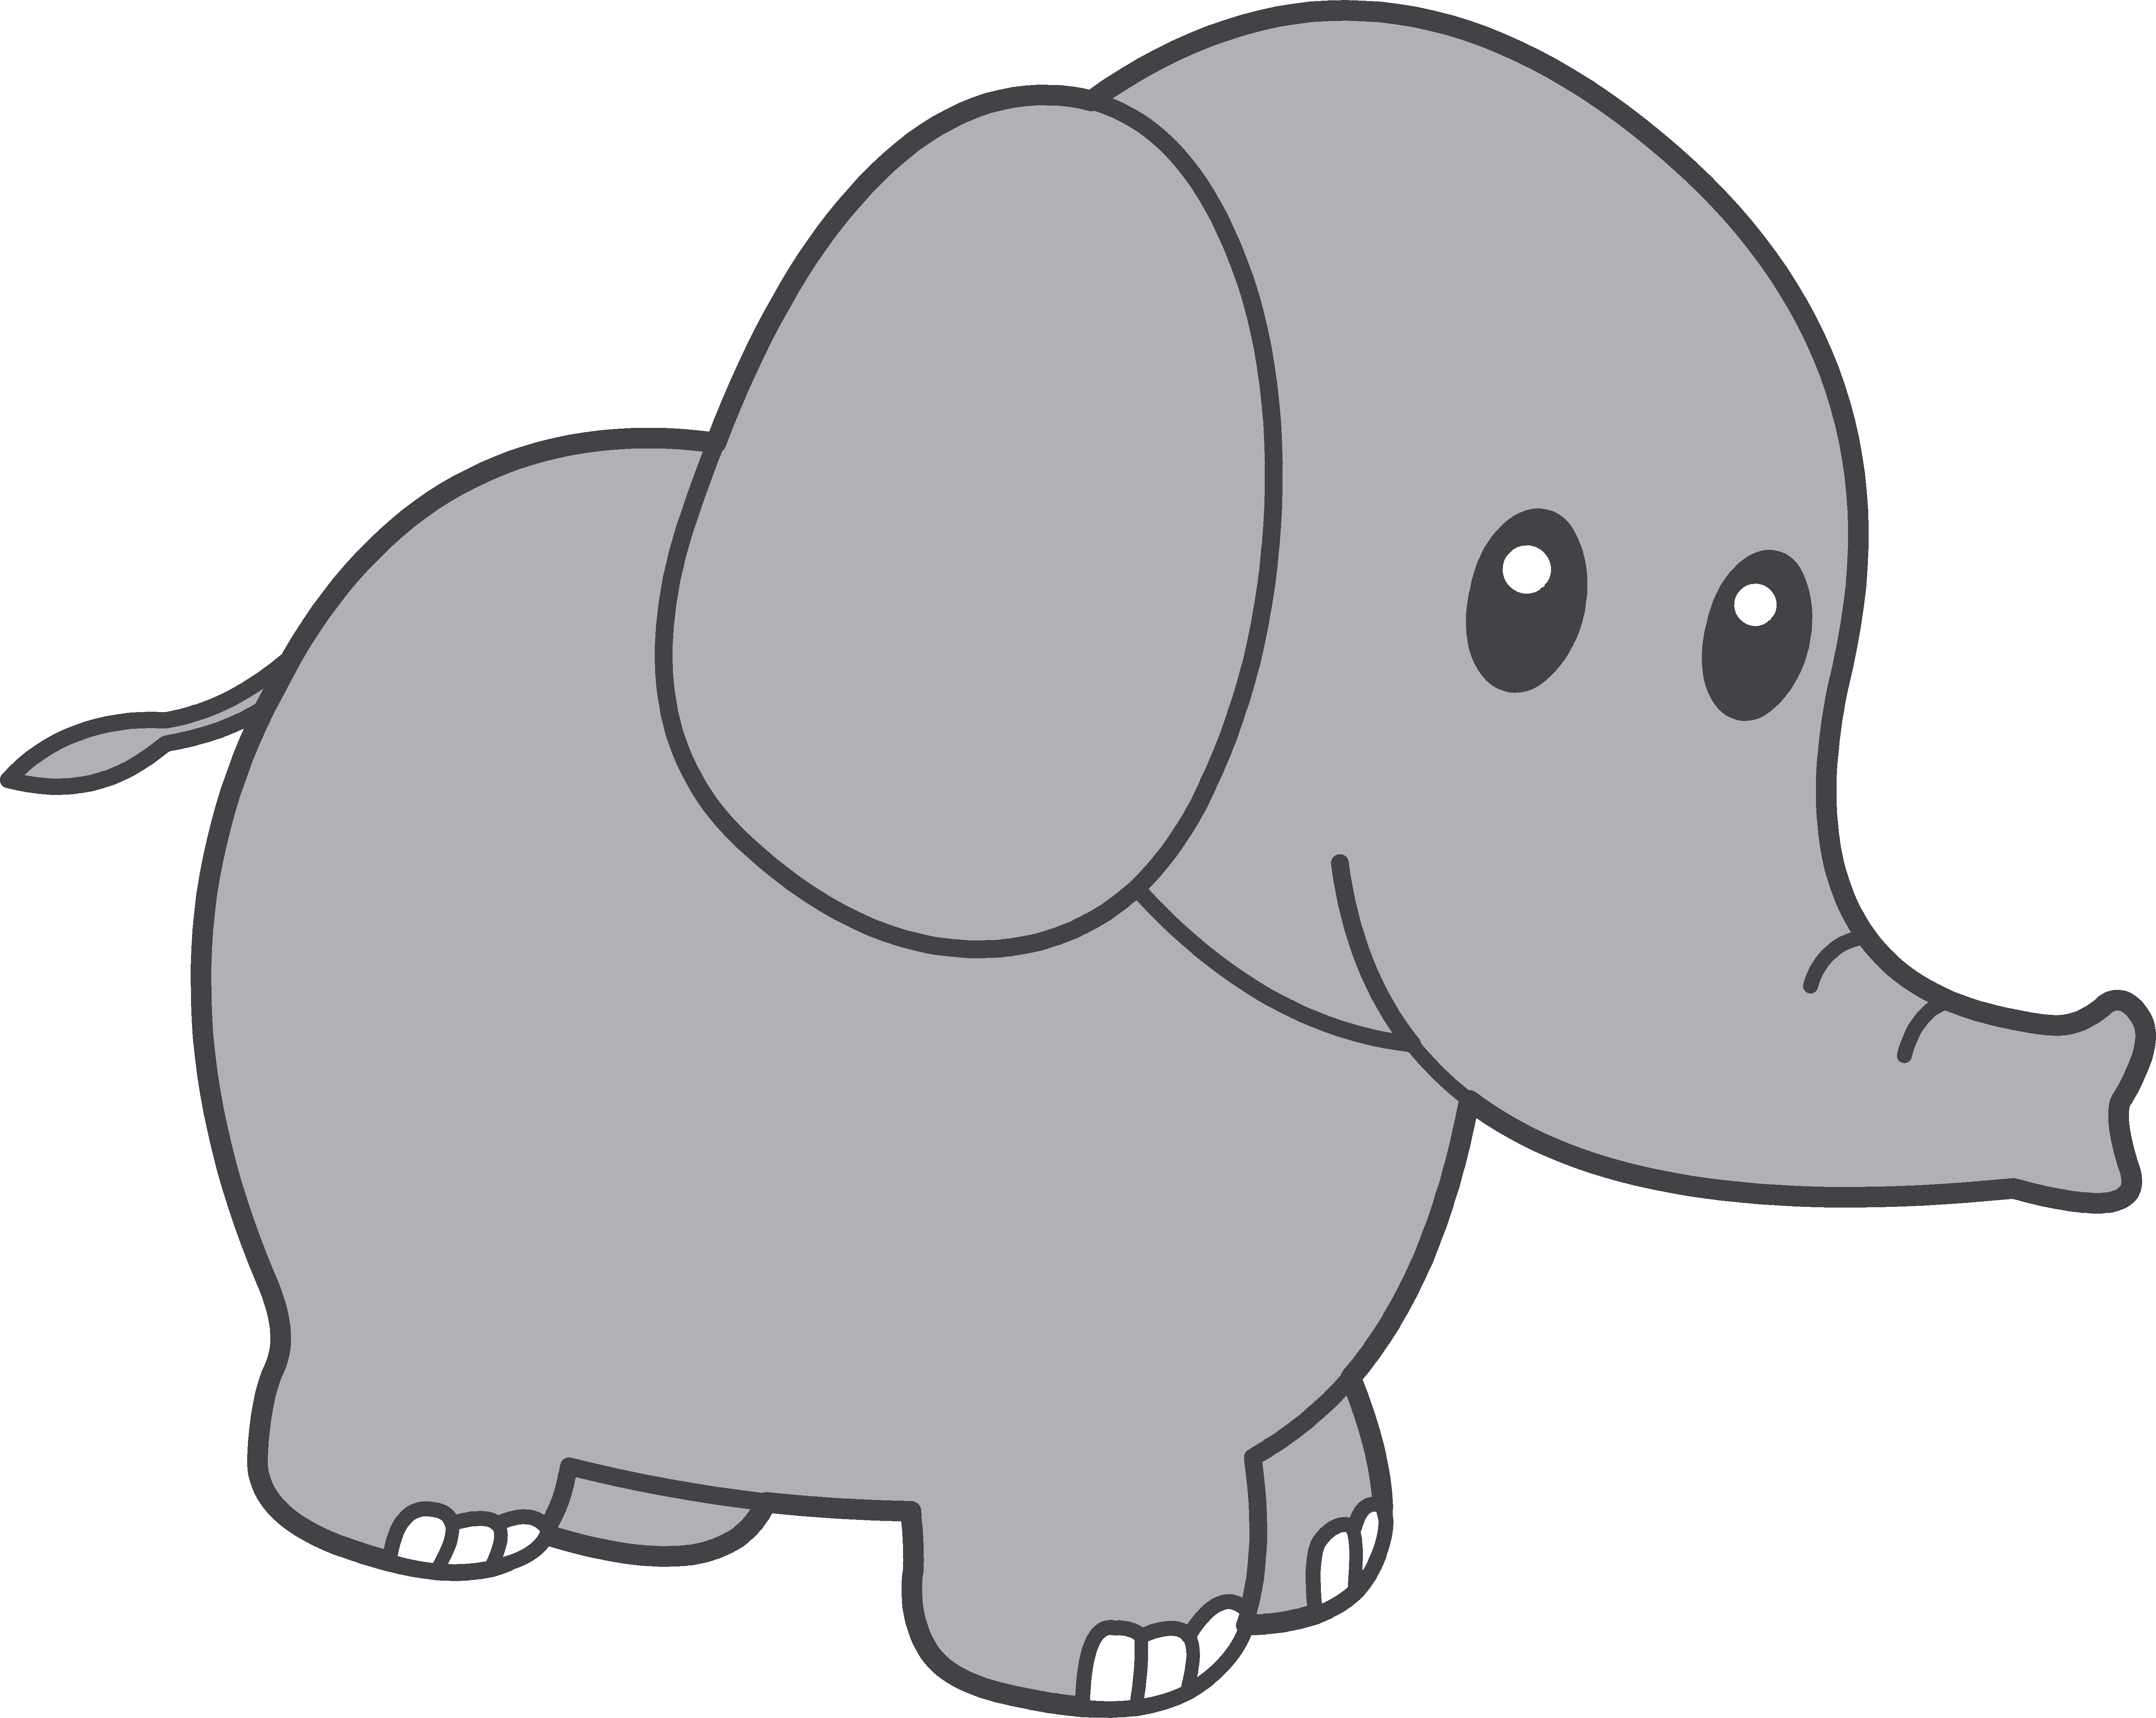 Free clipart elephant cartoon picture transparent download Free Images Elephant, Download Free Clip Art, Free Clip Art on ... picture transparent download